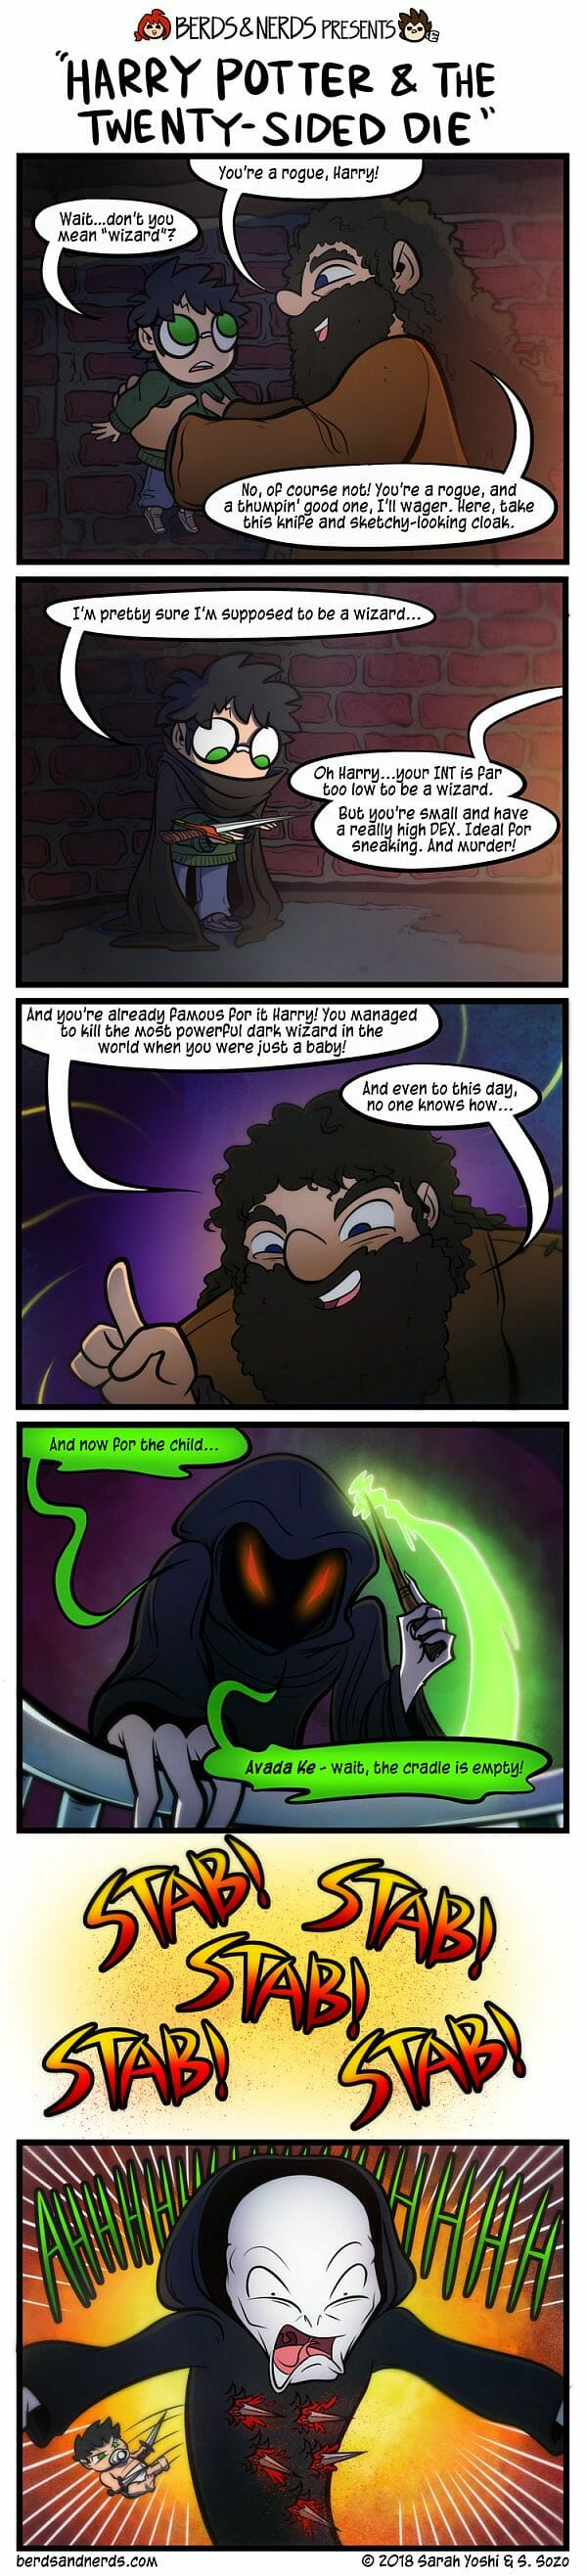 Harry Potter as a rogue